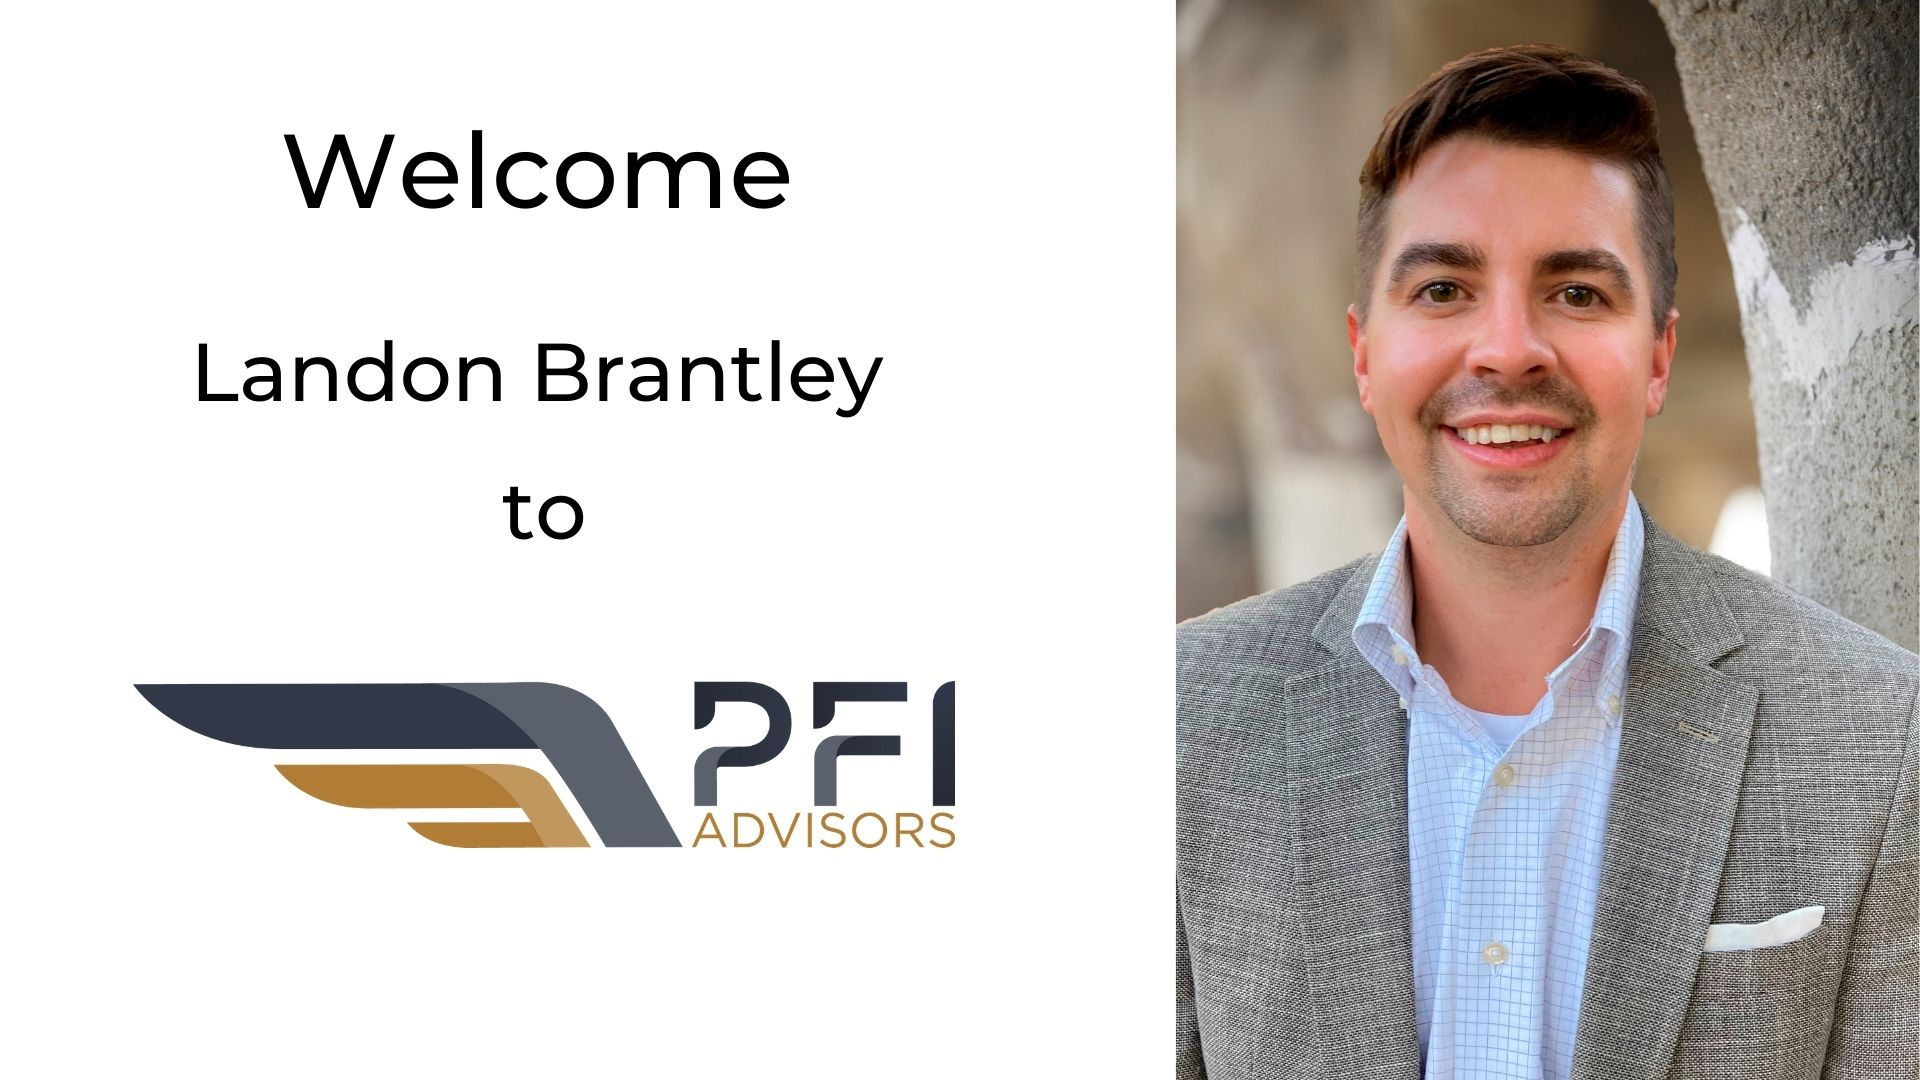 Landon Brantley  Joins PFI Advisors